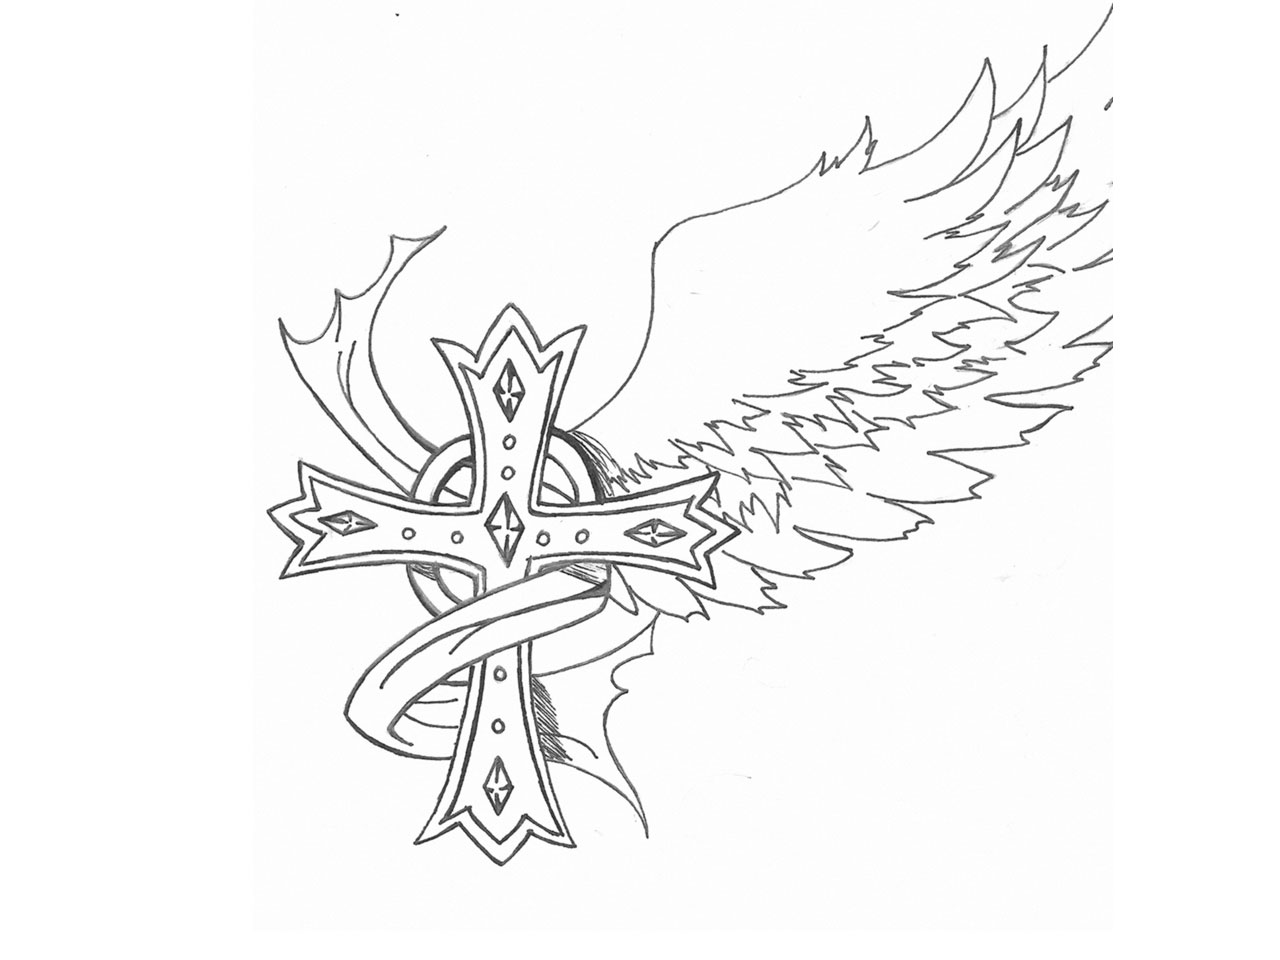 1280x960 Easy Drawings Of Crosses With Wings Free Designs